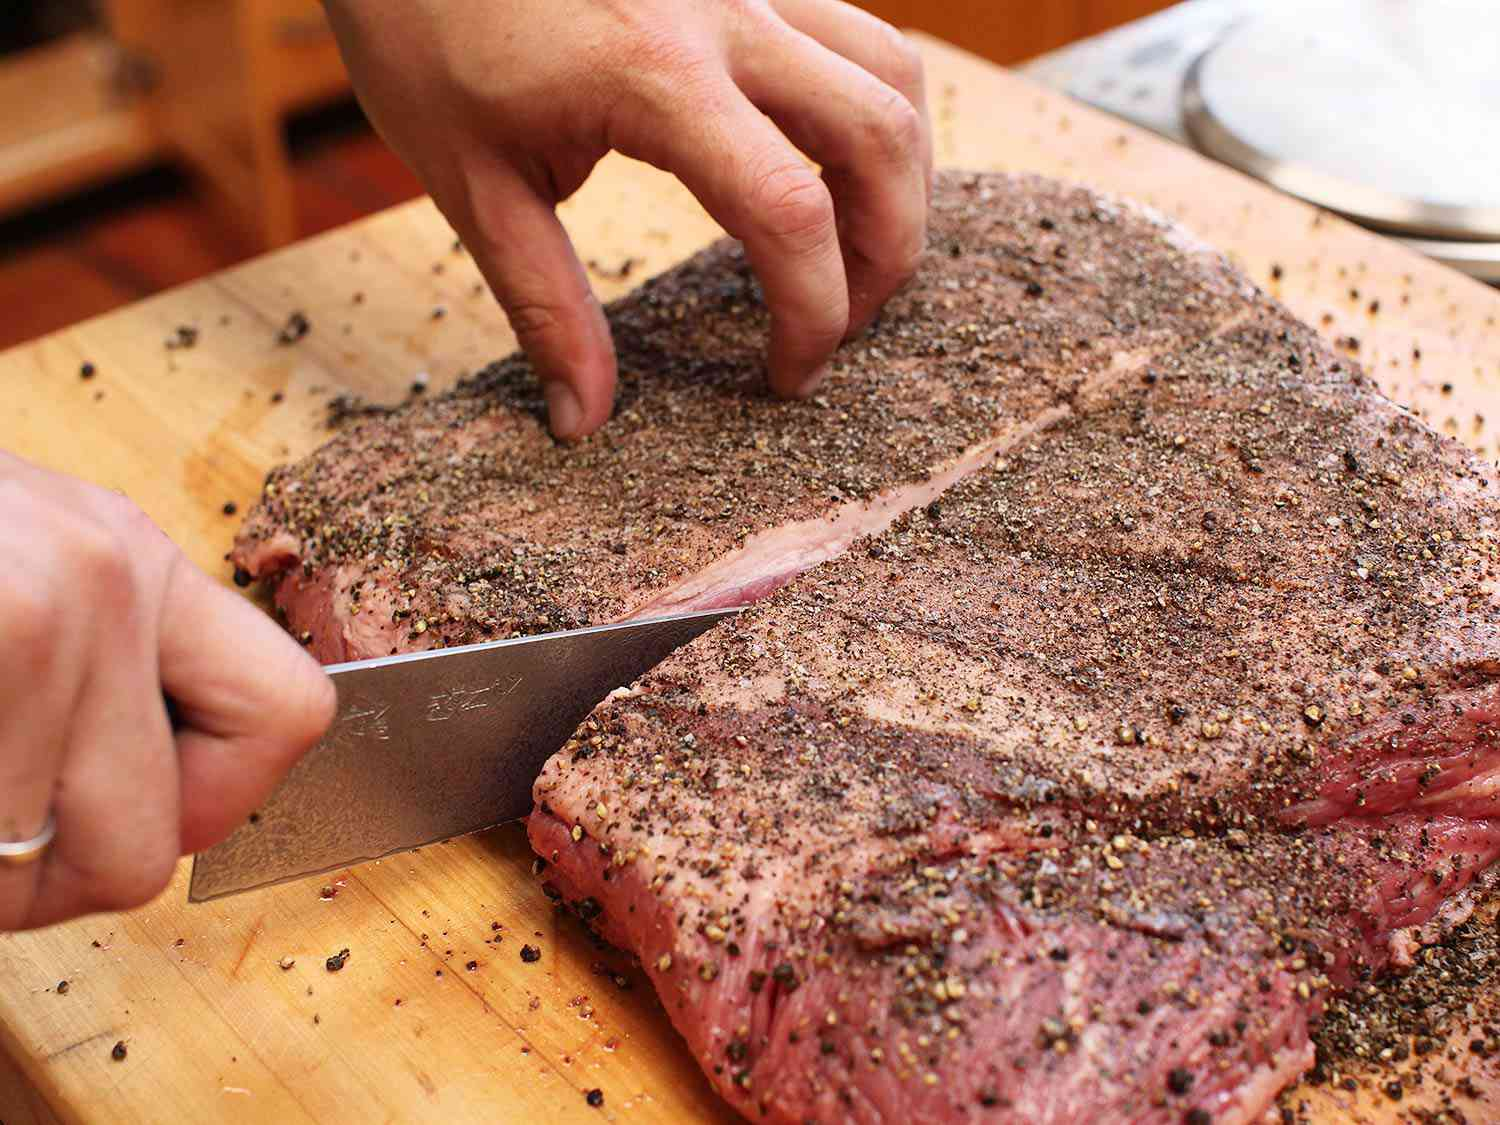 A knife slicing into a peppercorn-crusted brisket to cut it in half